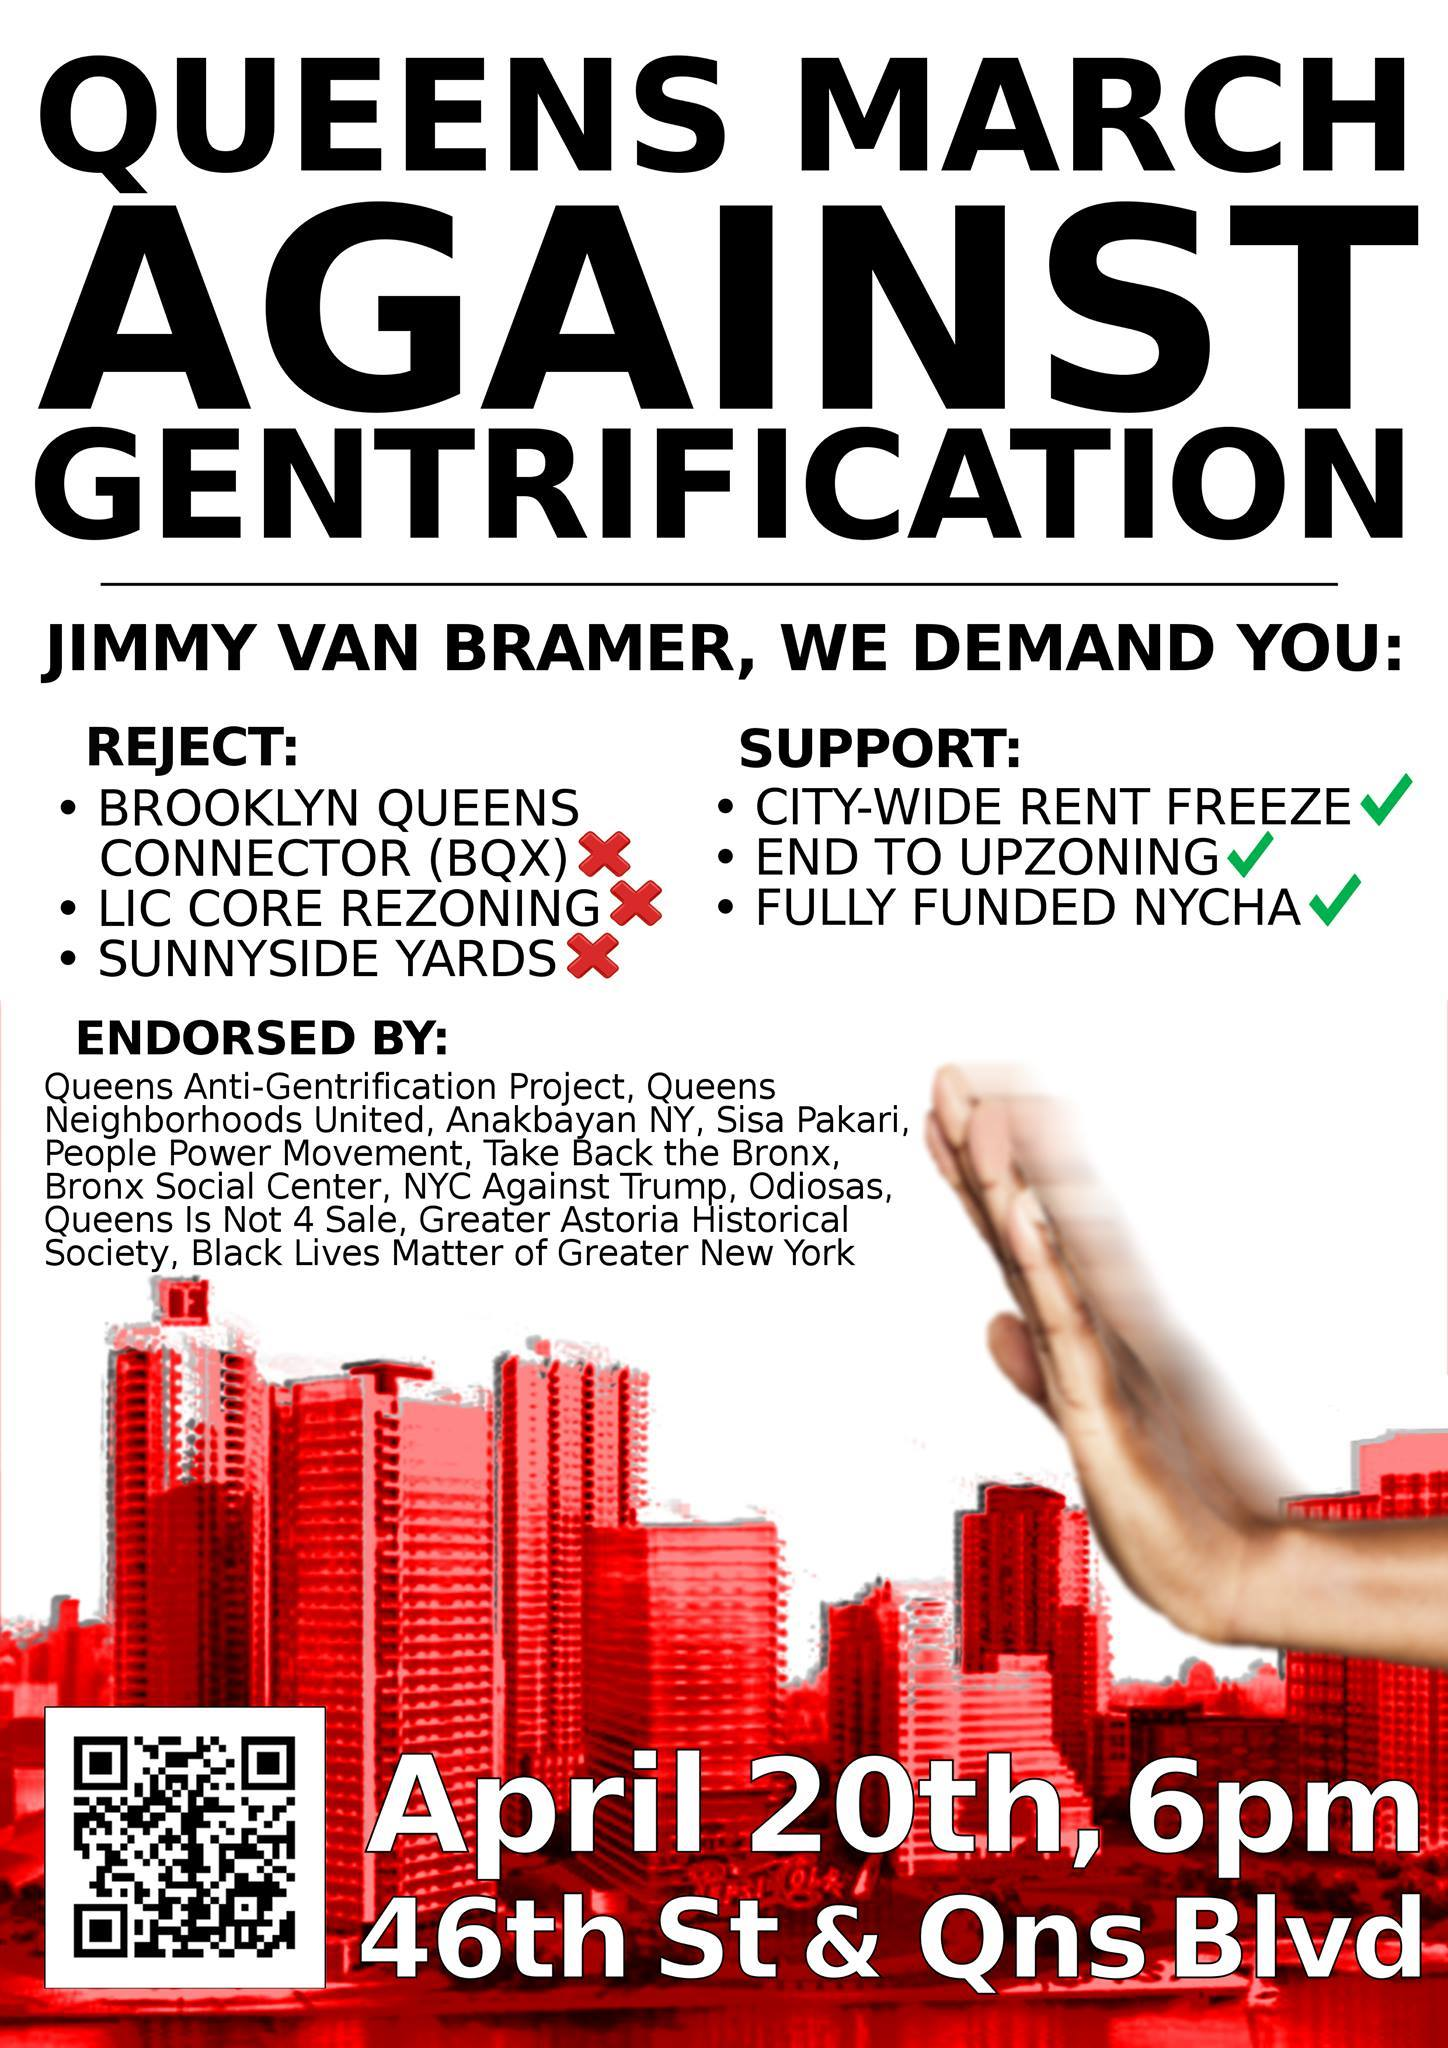 An advertisement for next week's protest march being organised by grassroots activists. Source : Queens Anti-Gentrification Project/Fair Use